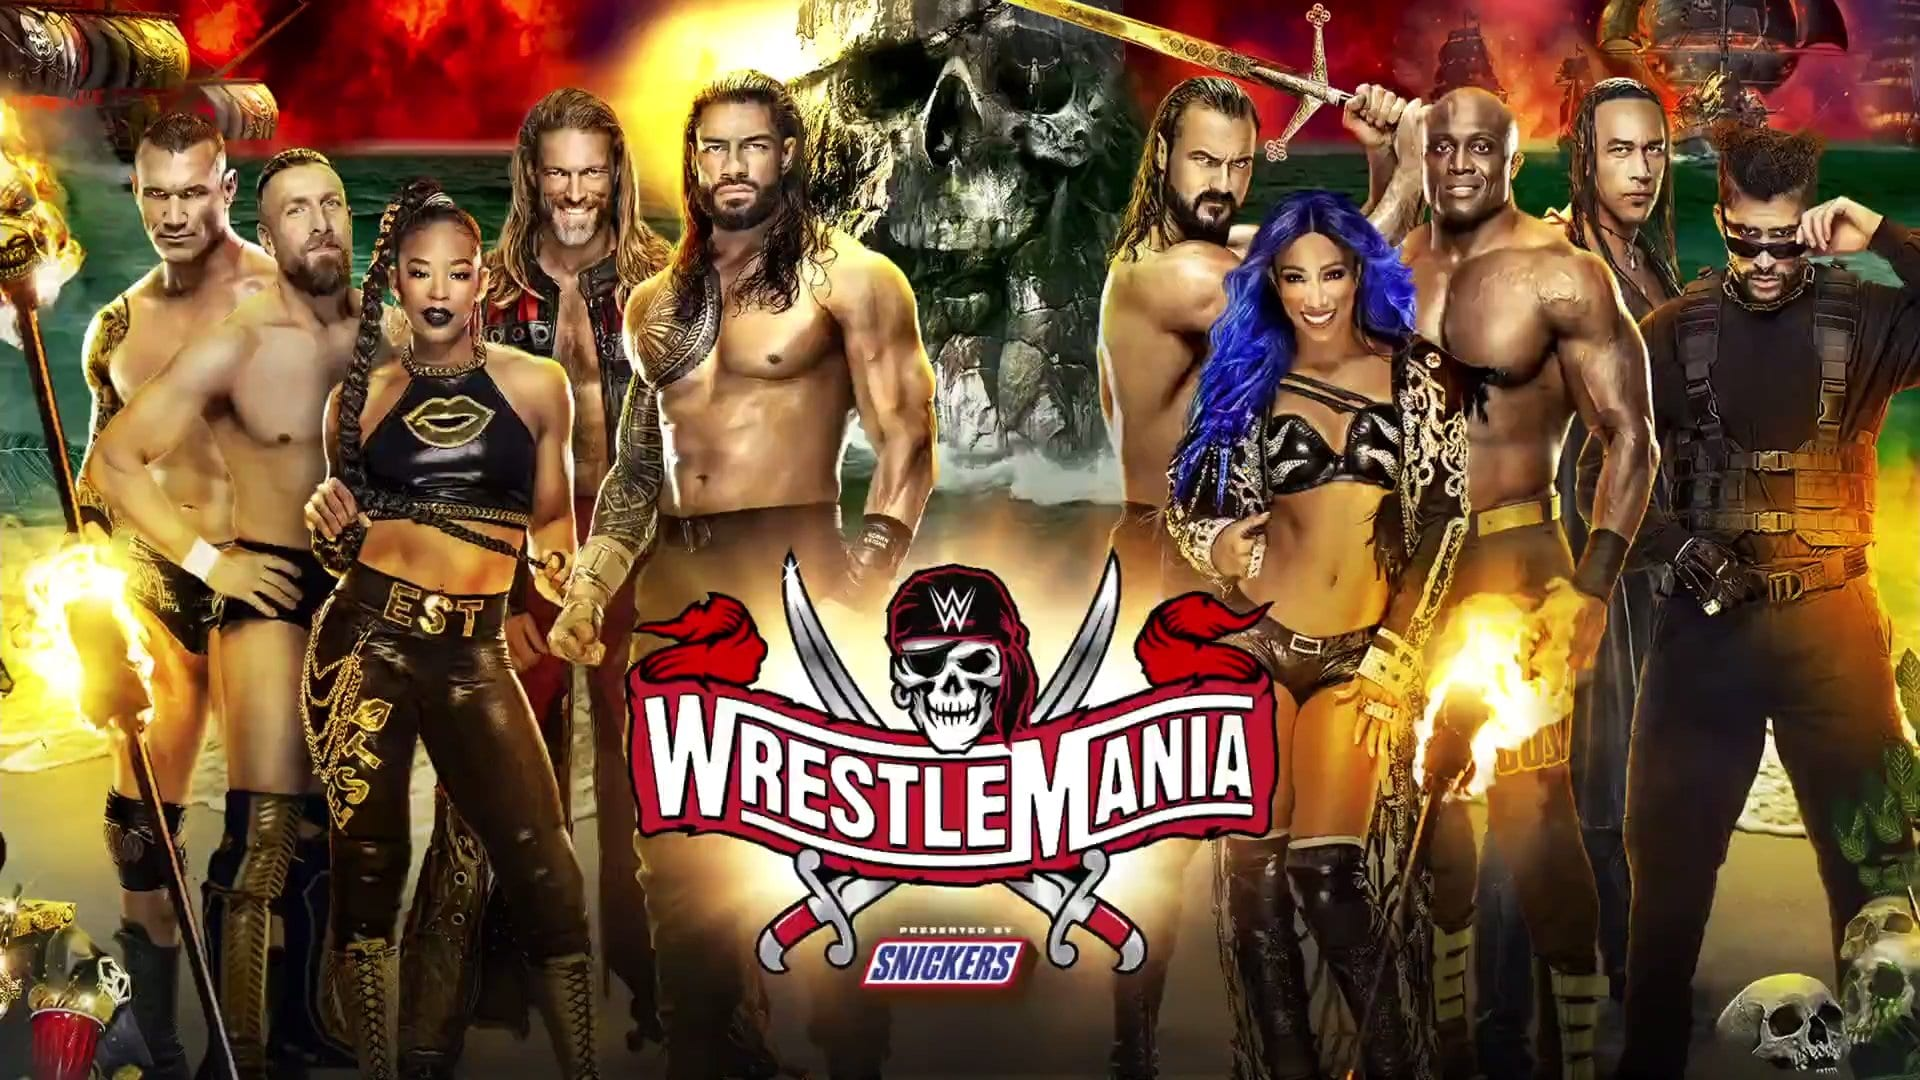 Photos: WWE Apparently Using Fan Cutouts For The WrestleMania 37 Crowd